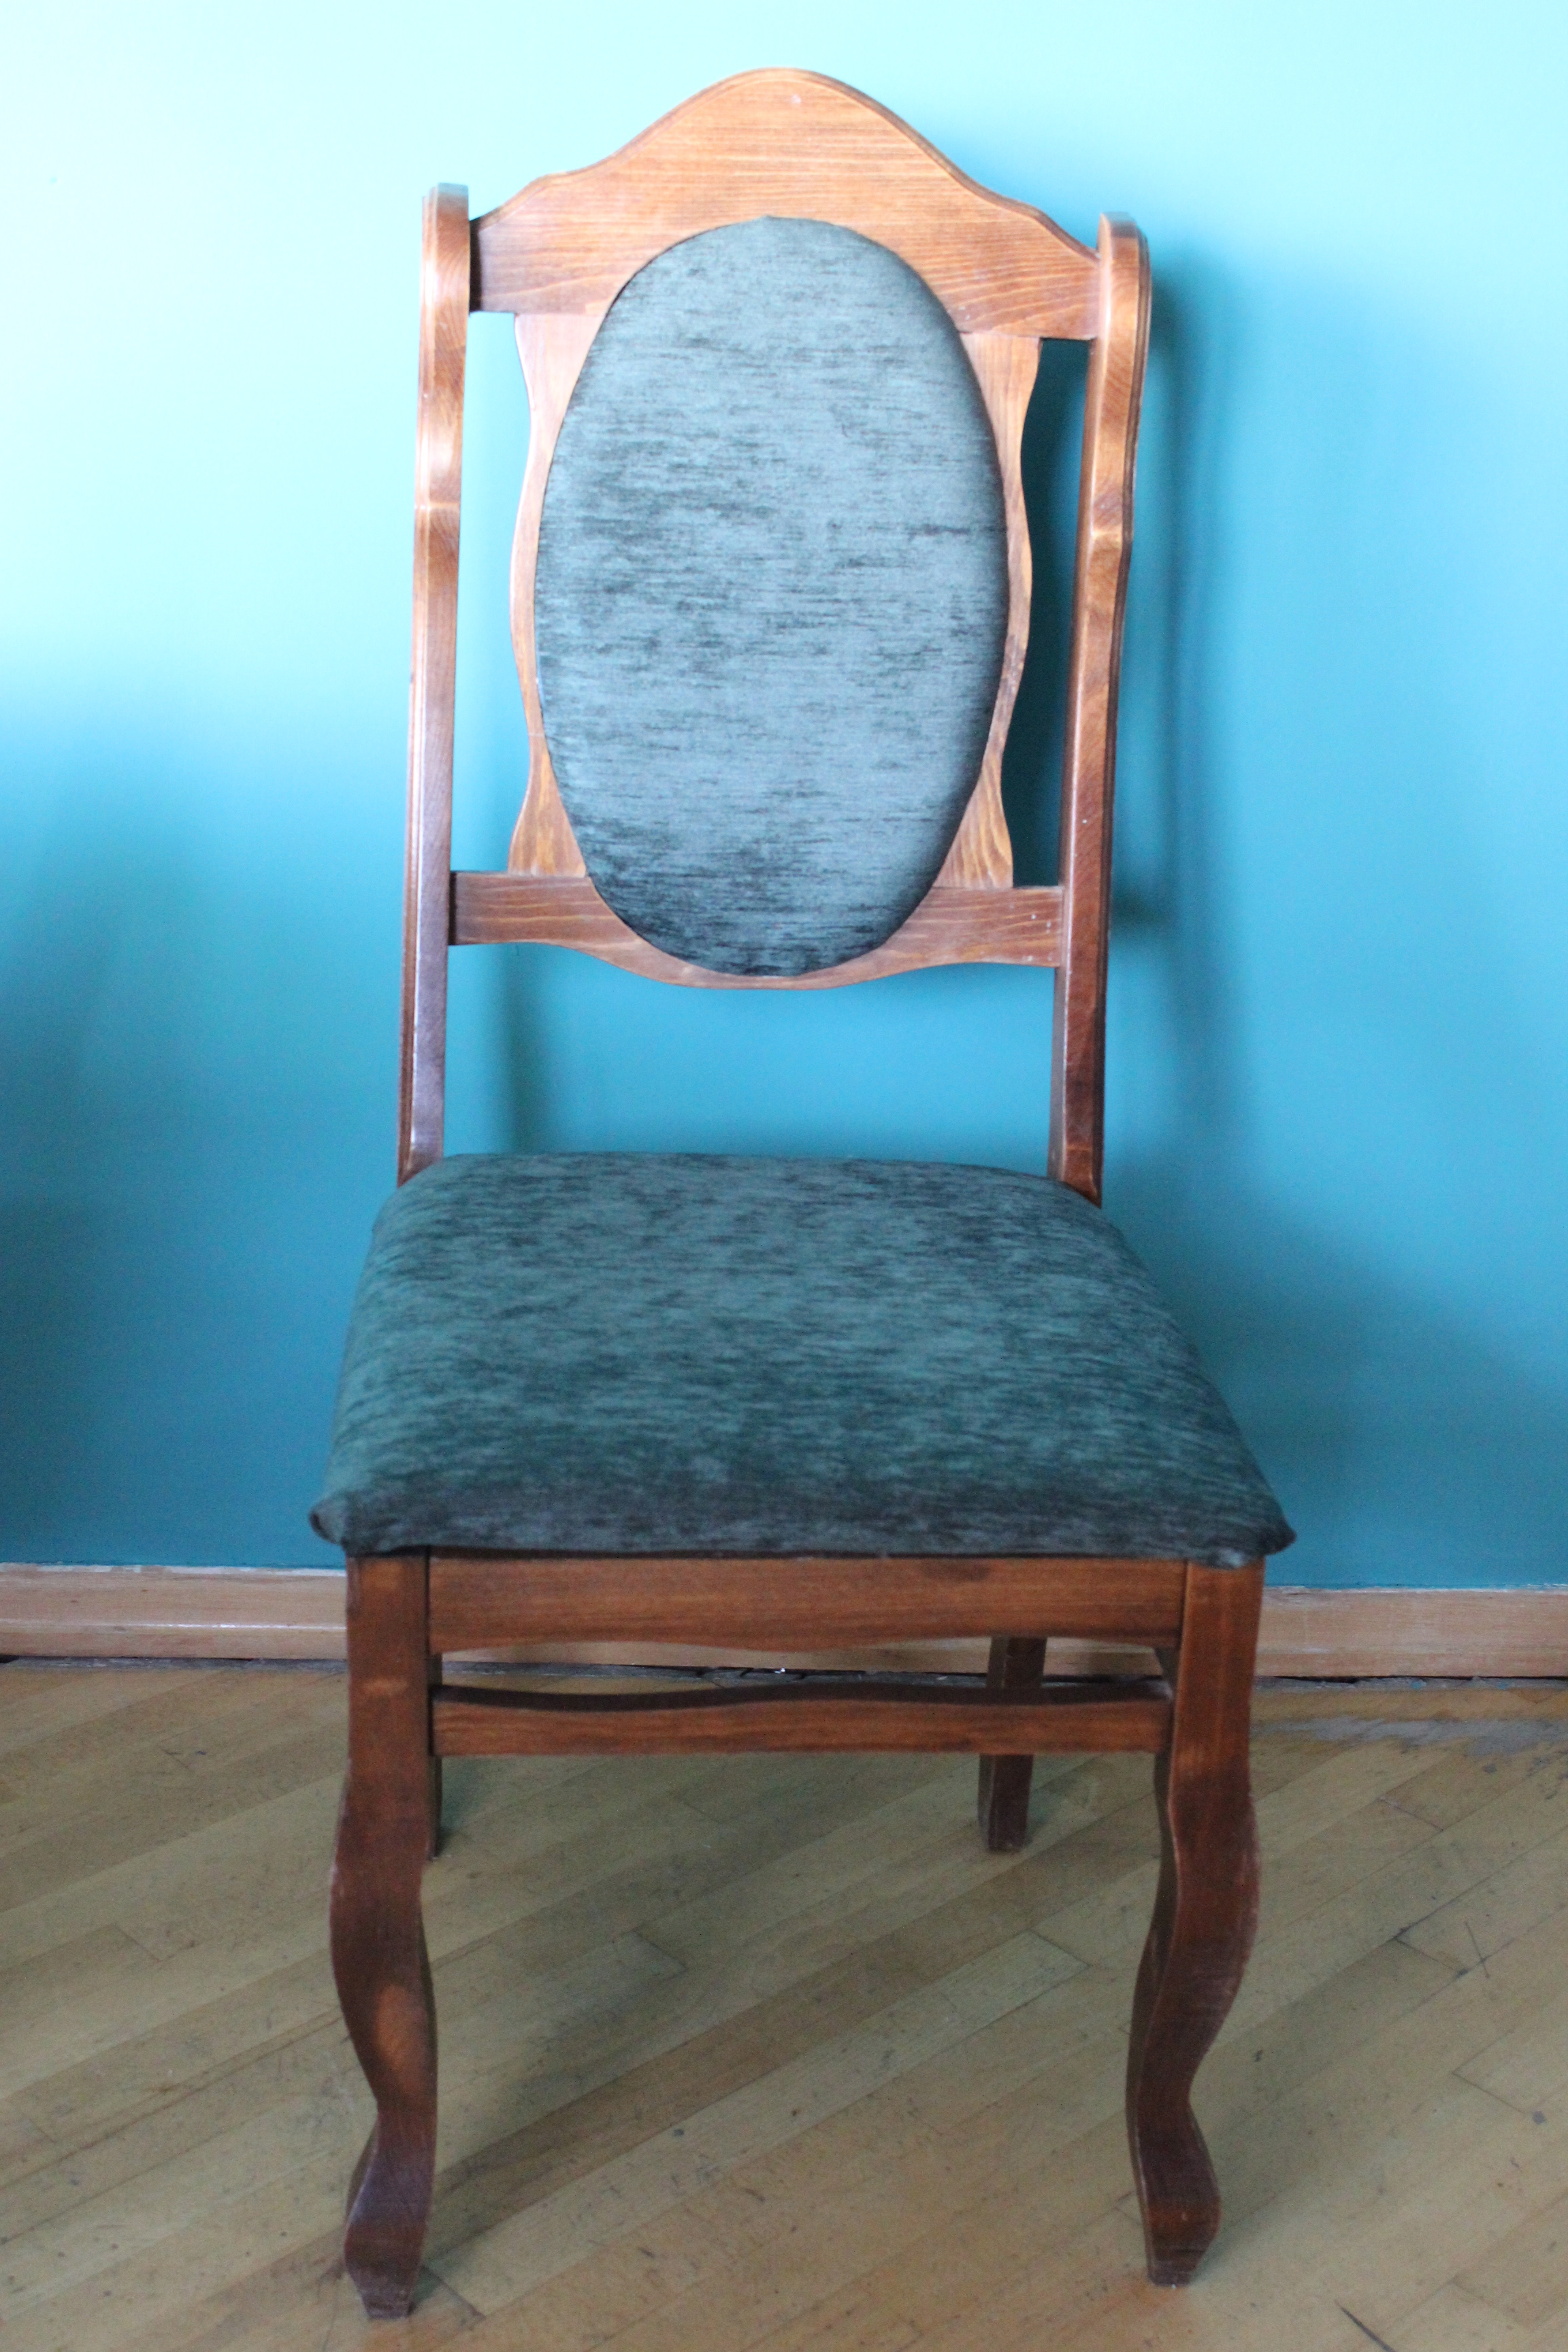 wishing chair photo frame hanging drawing diy project reupholstering old chairs